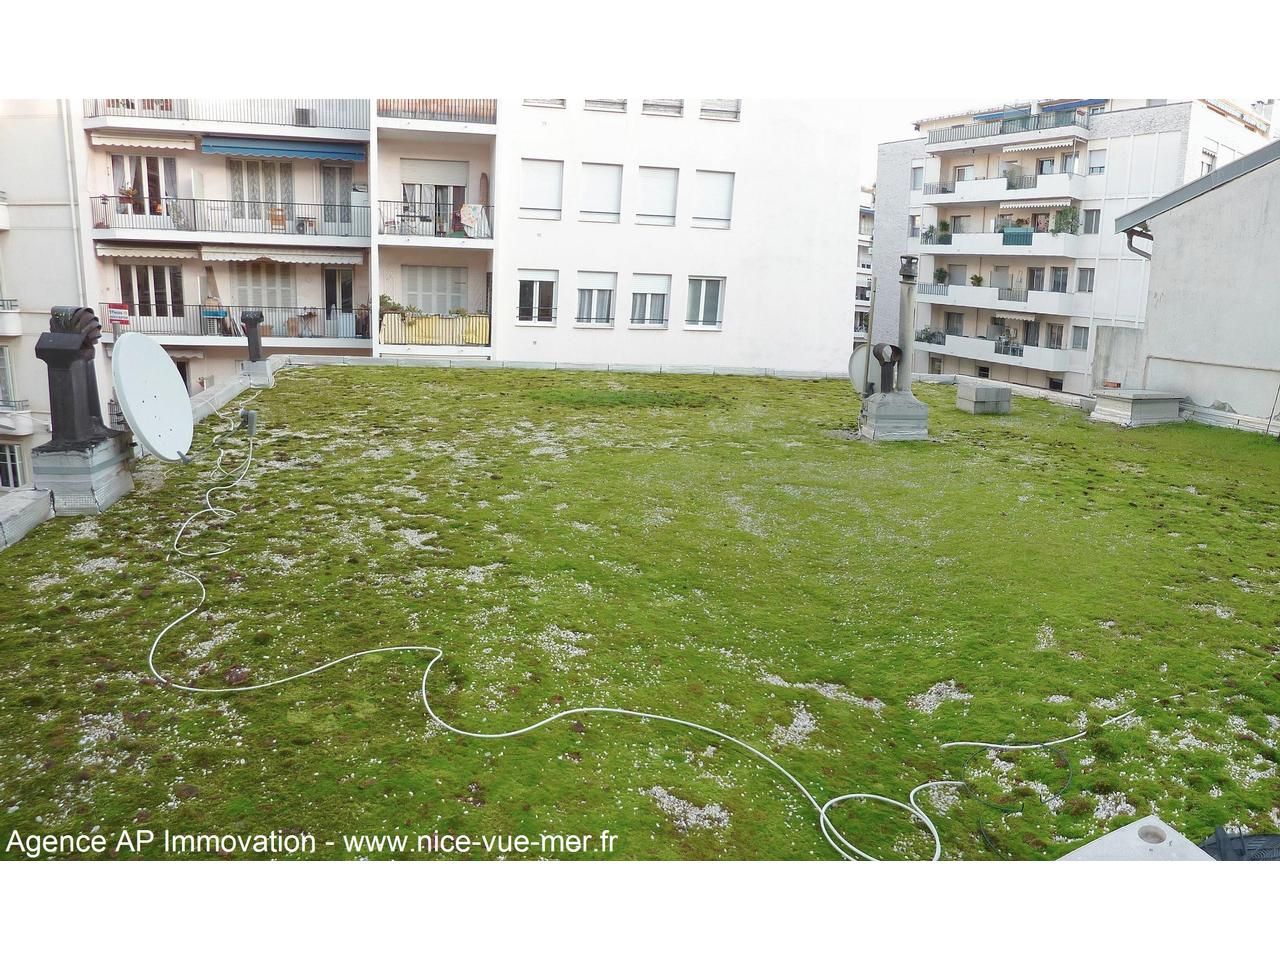 Immobilier nice vue mer Appartement Nice Appartement a